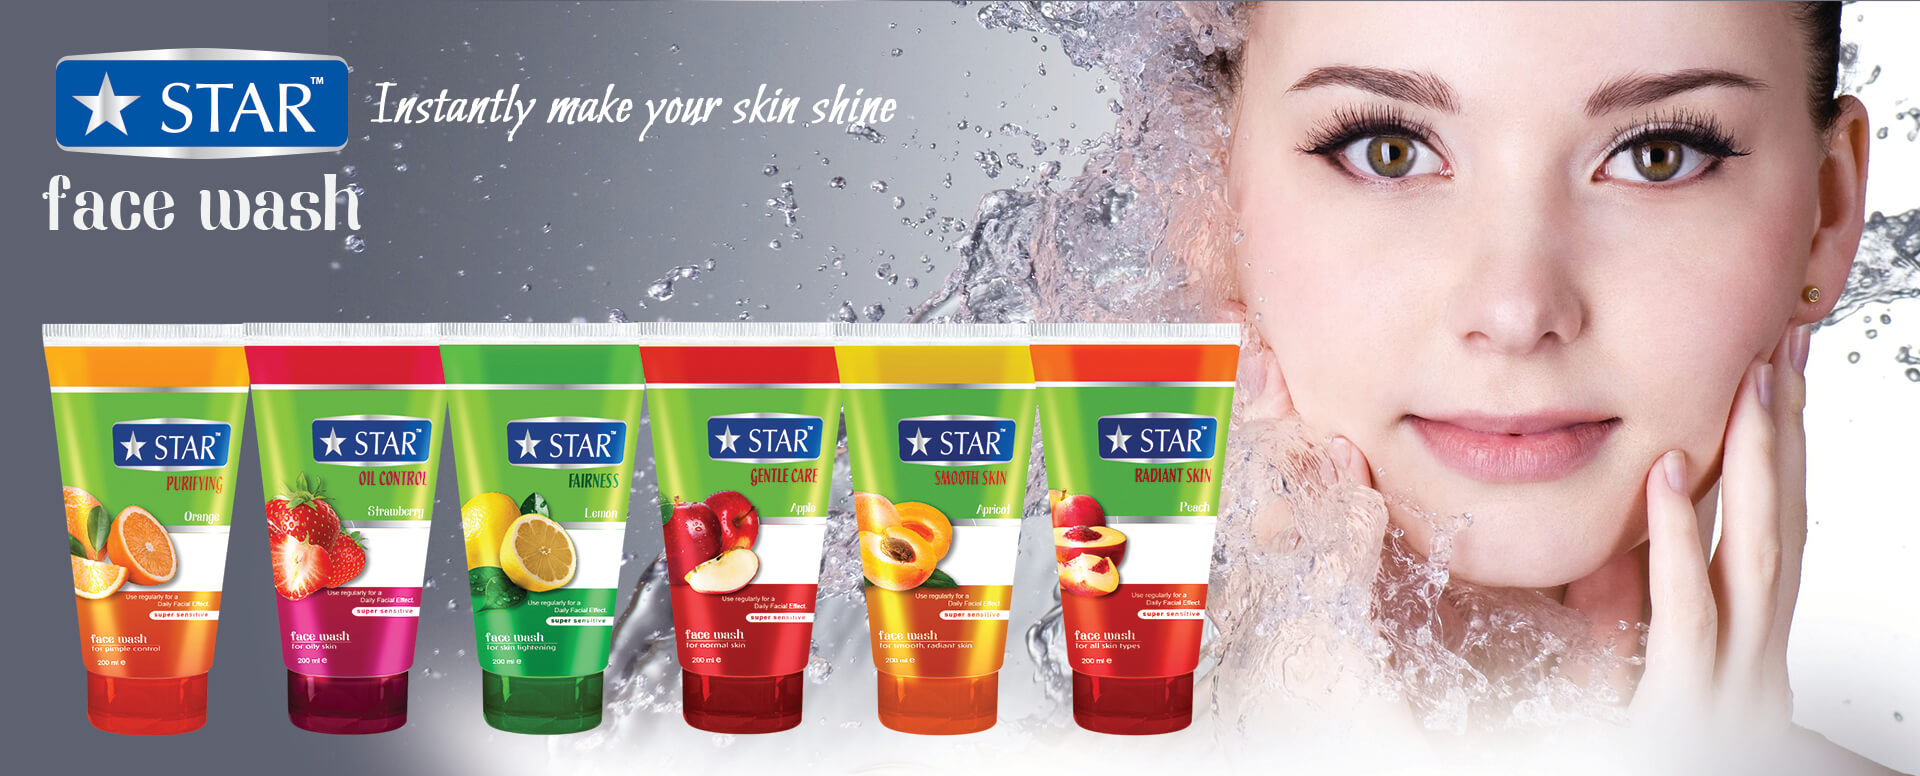 Star Face Wash BANNER